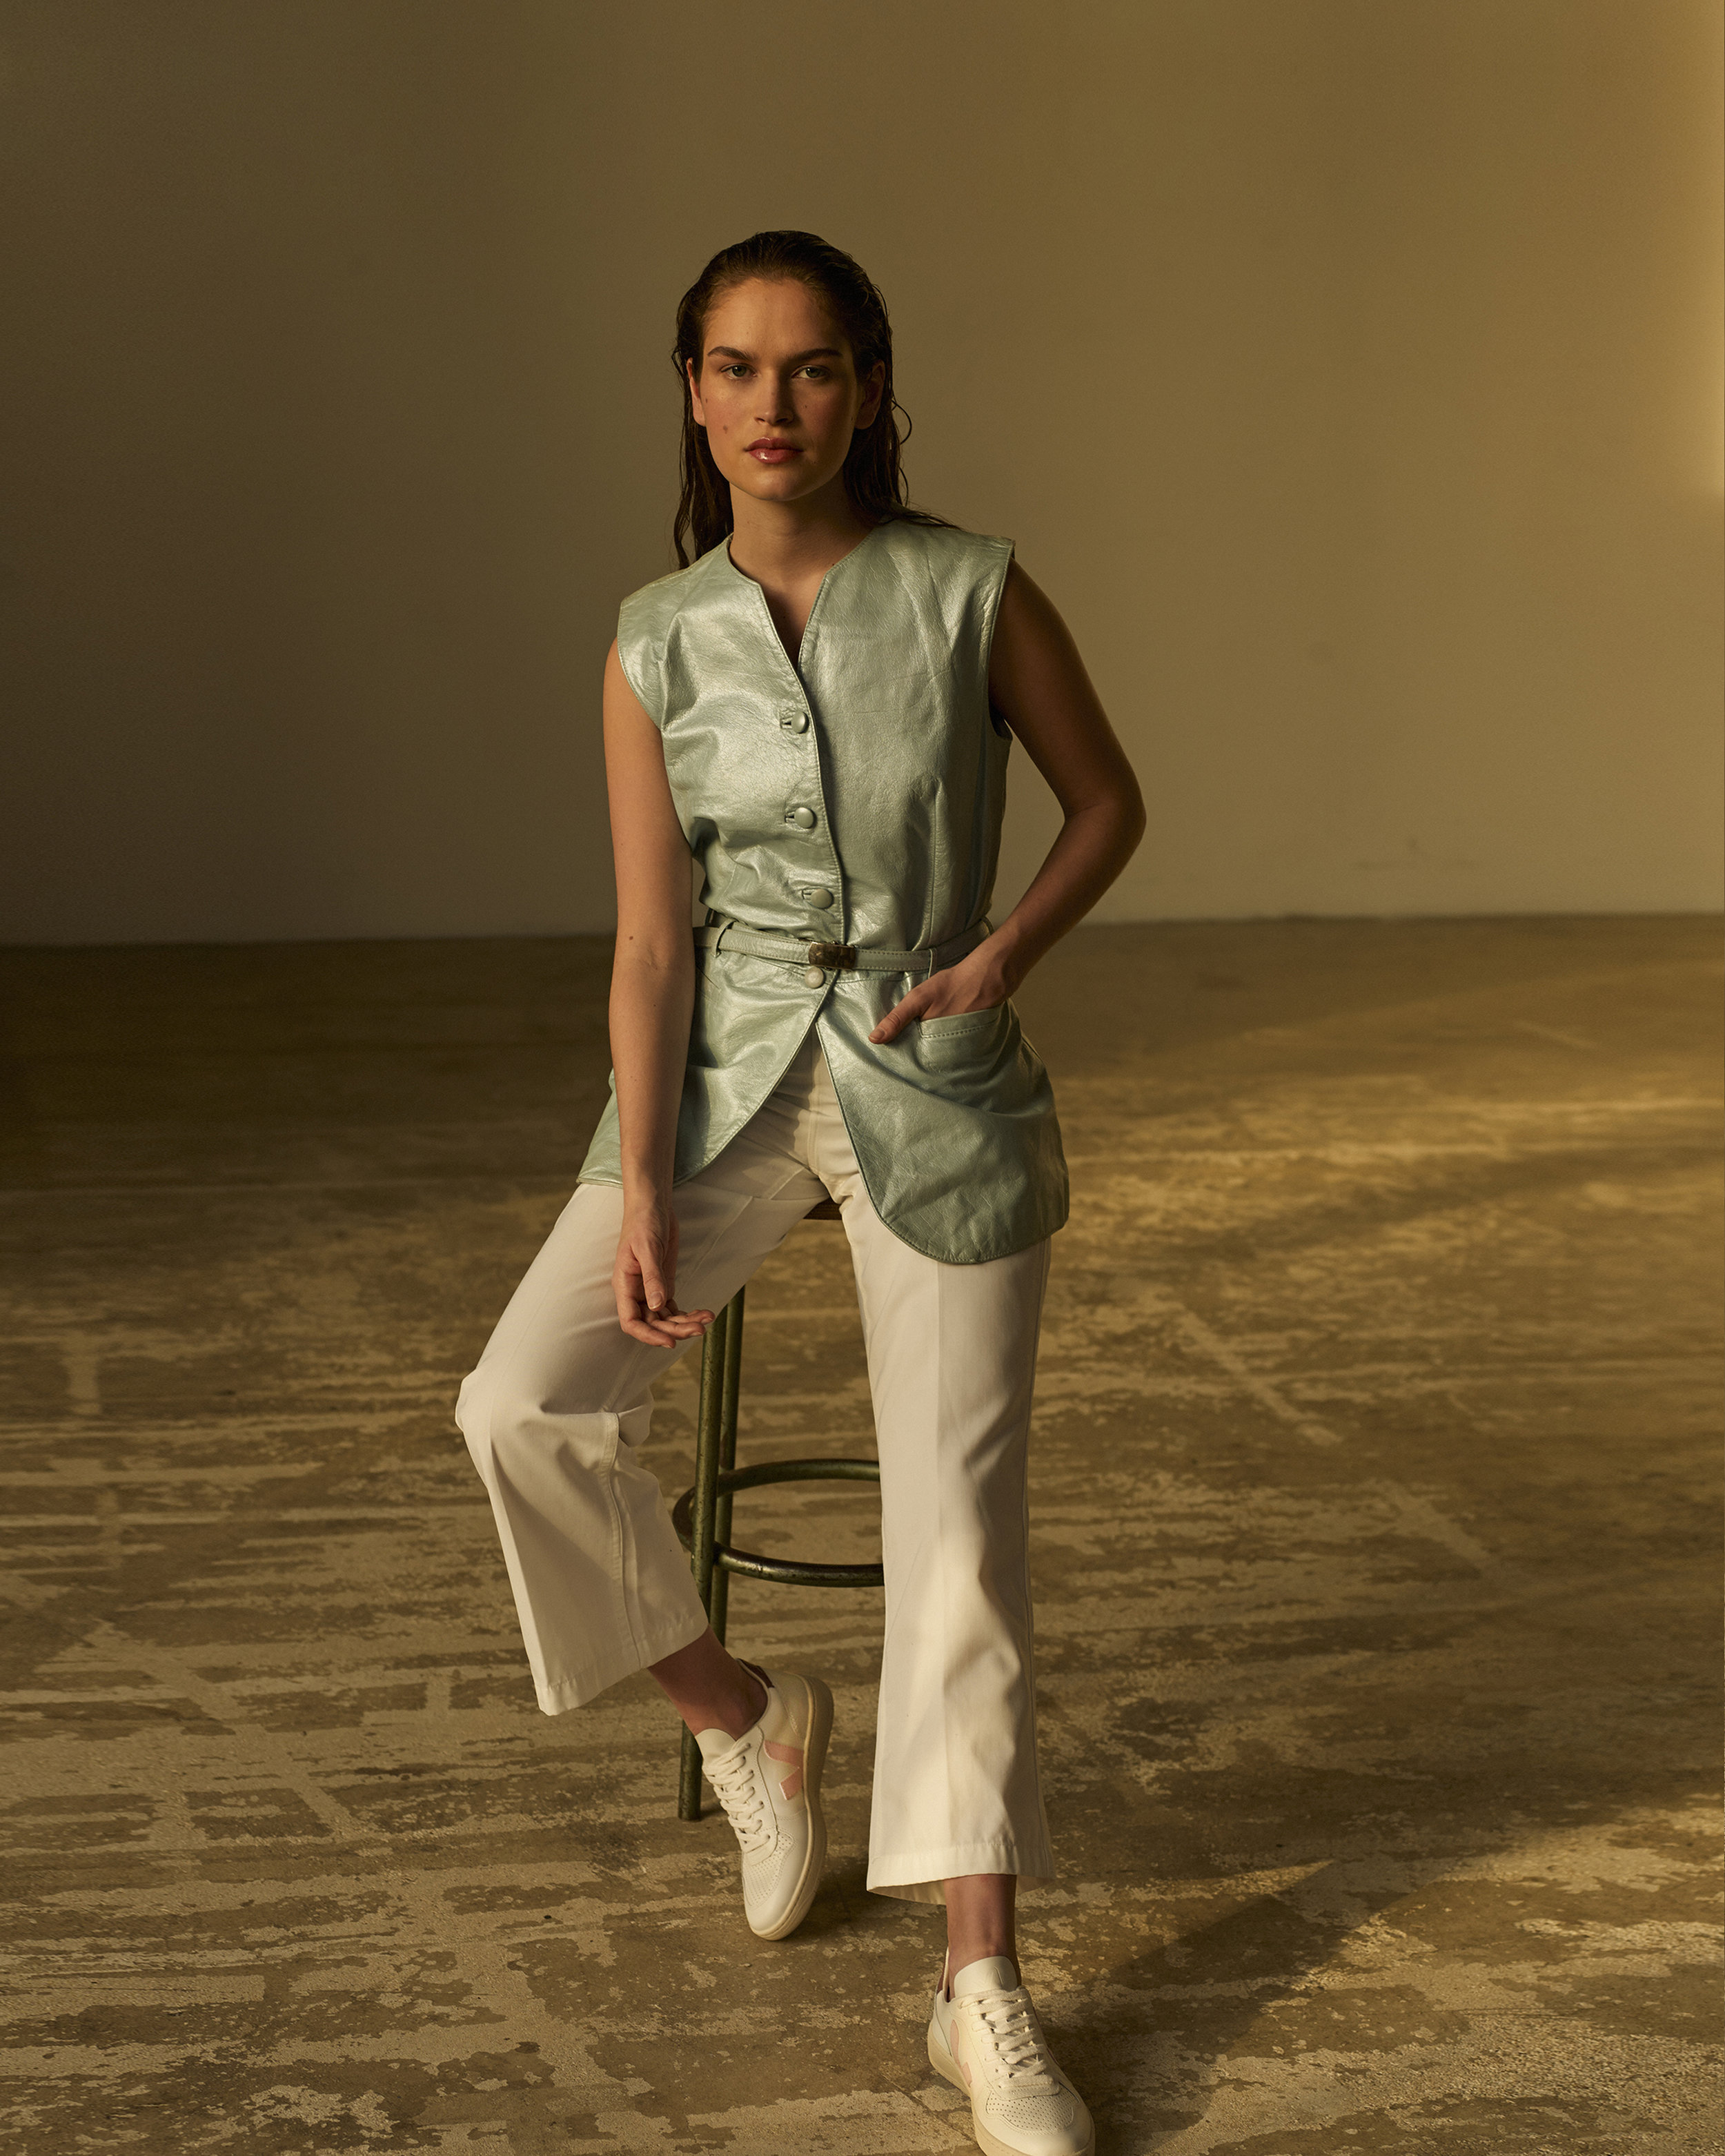 SHOP THE LOOK -  Veste  /  Pantalon